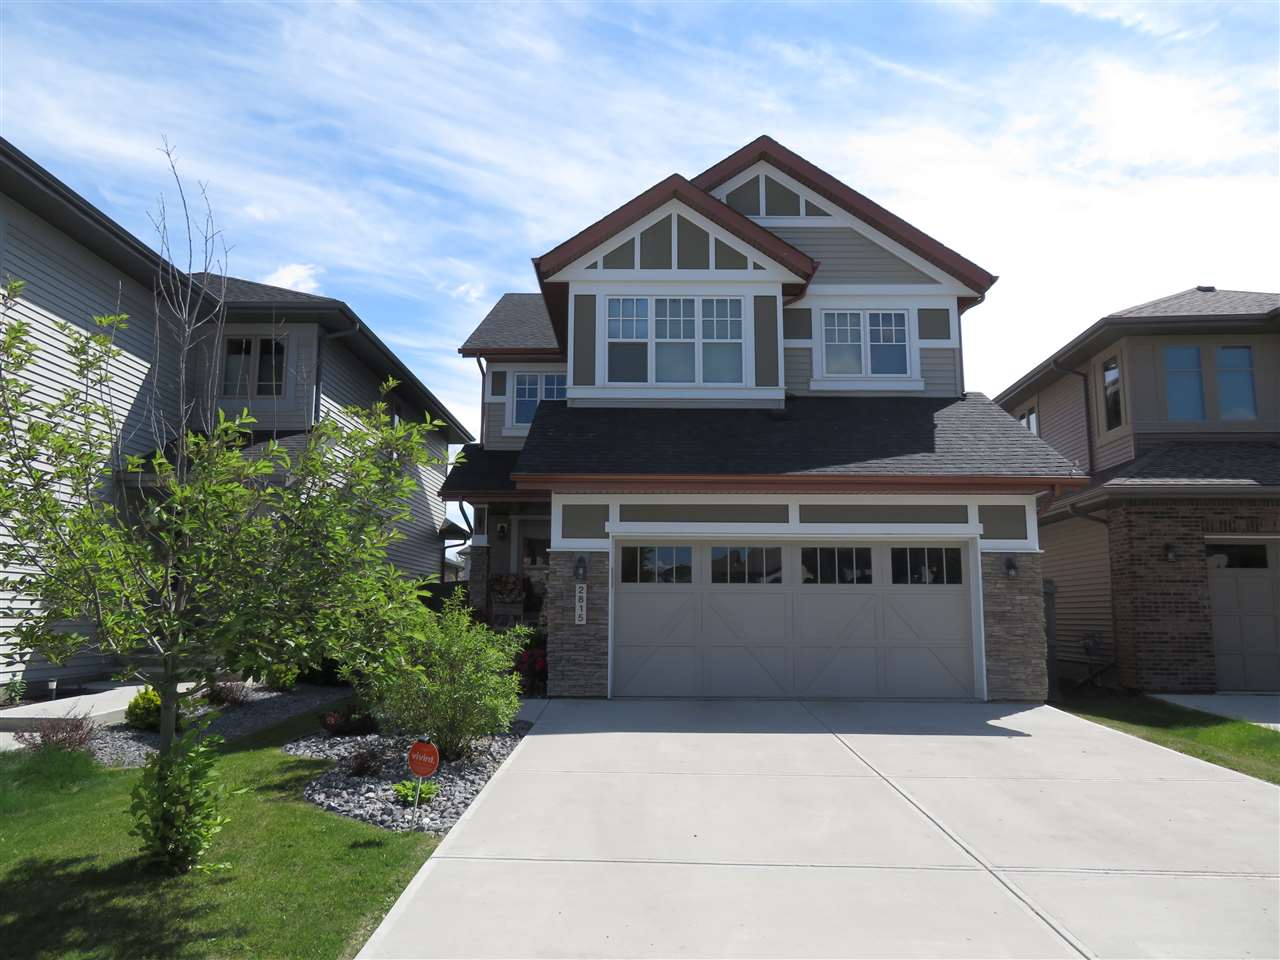 Main Photo: 2815 ANDERSON Place in Edmonton: Zone 56 House for sale : MLS®# E4114186